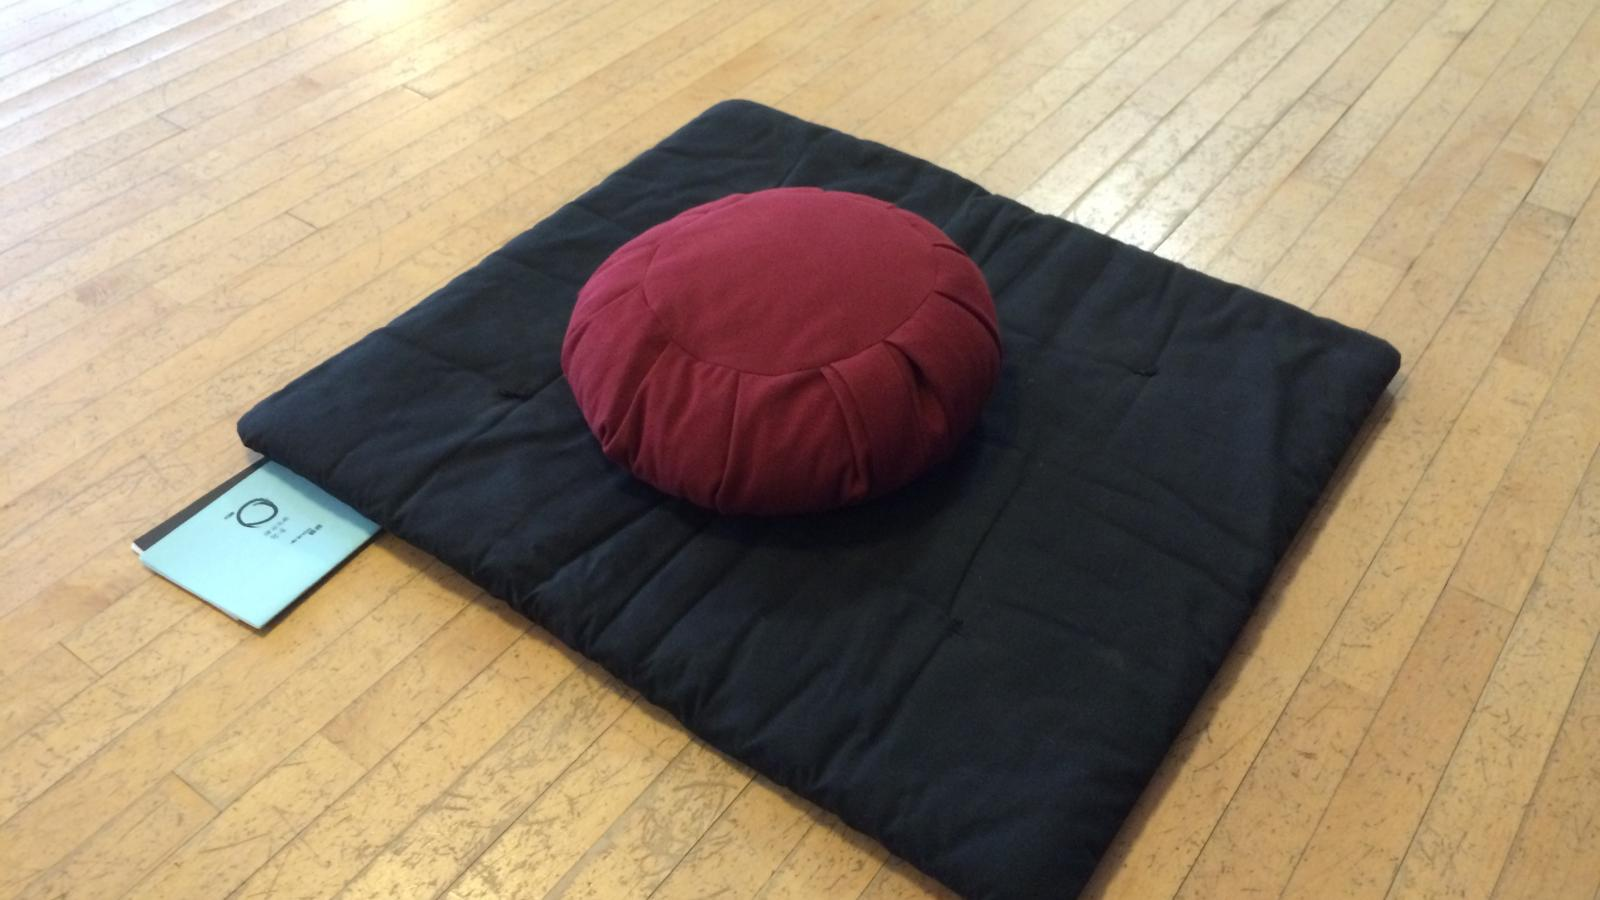 A typical meditation zabuton (mat) with a zafu (cushion), along with the sutra books